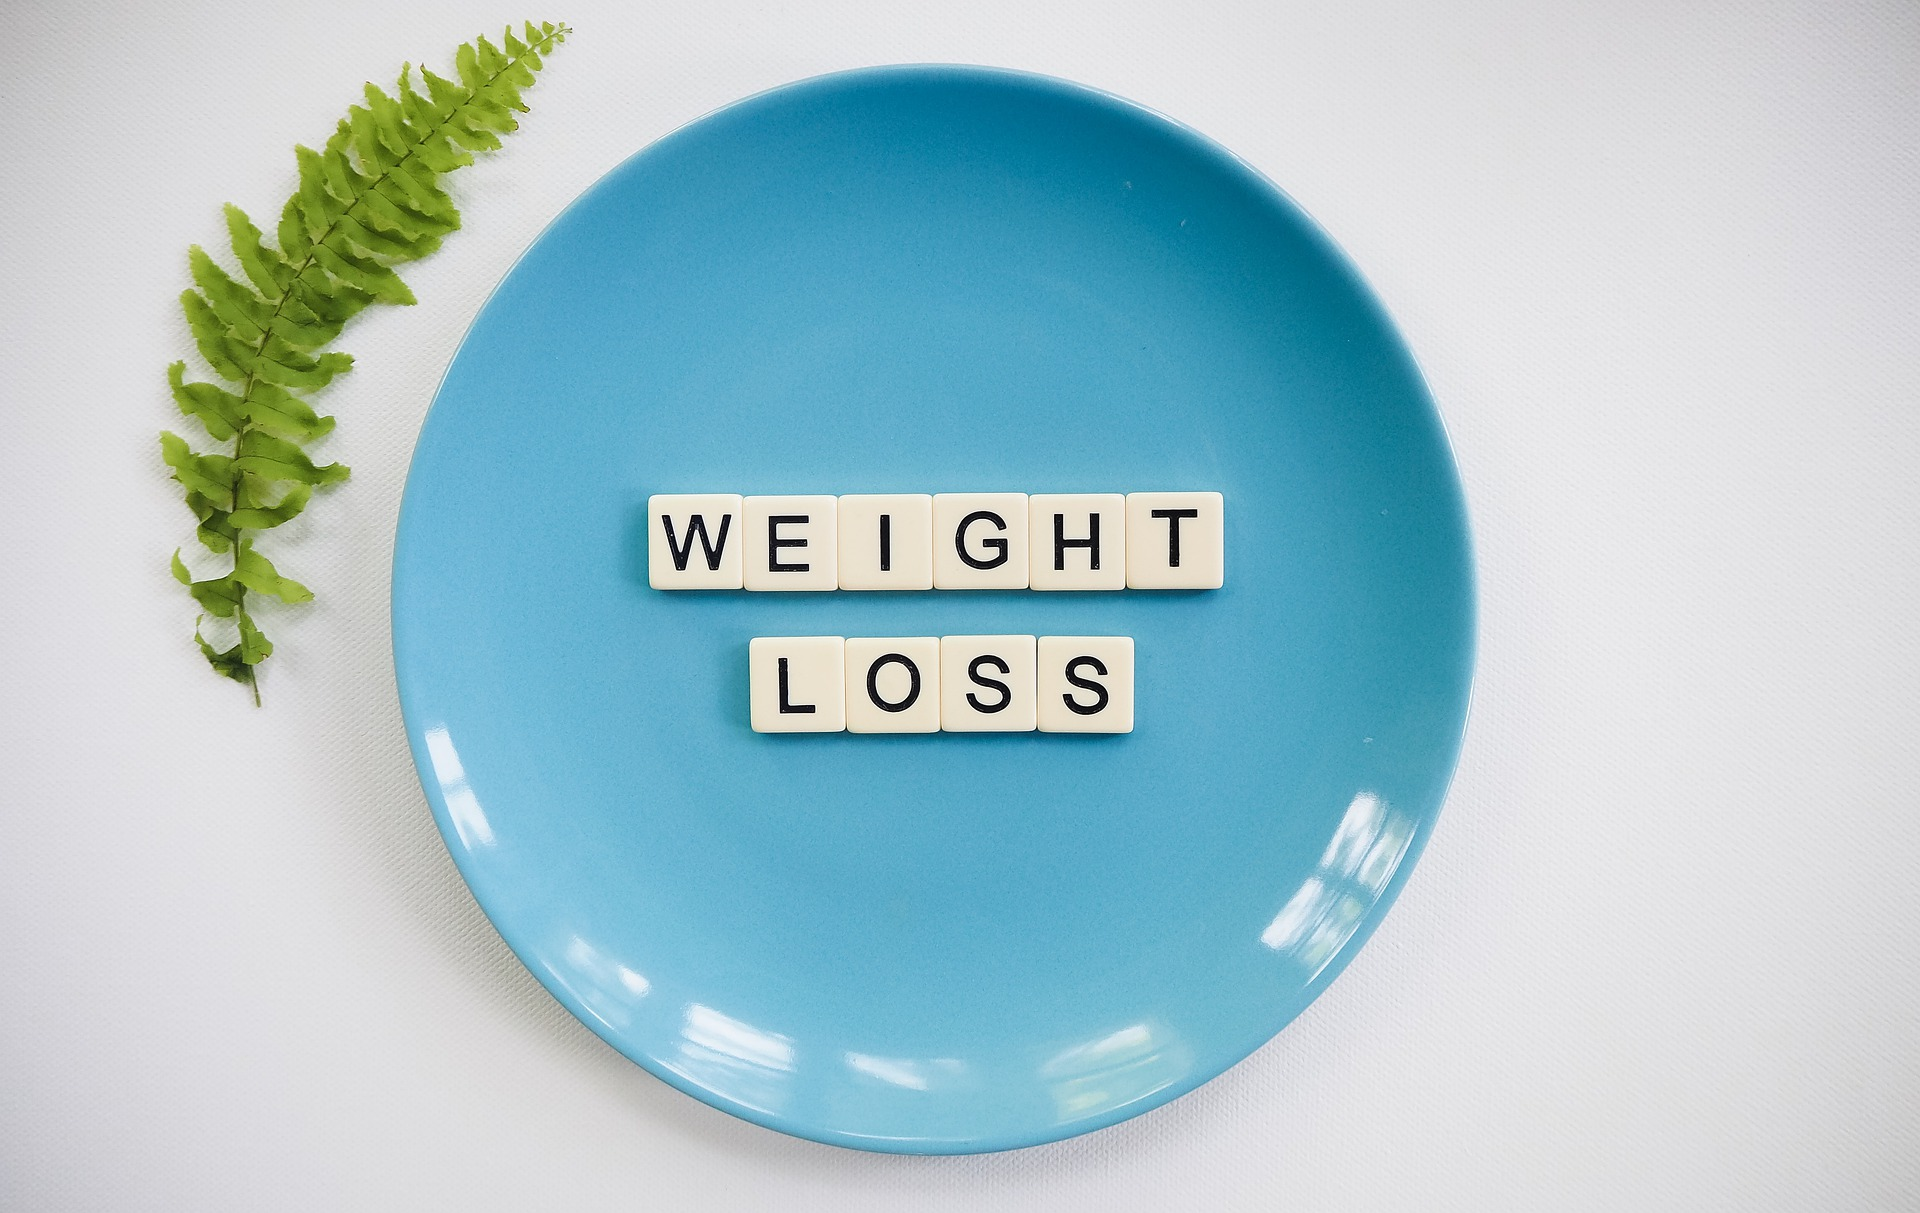 What's the easy way to lose weight?Best effective & innovative programs 2021